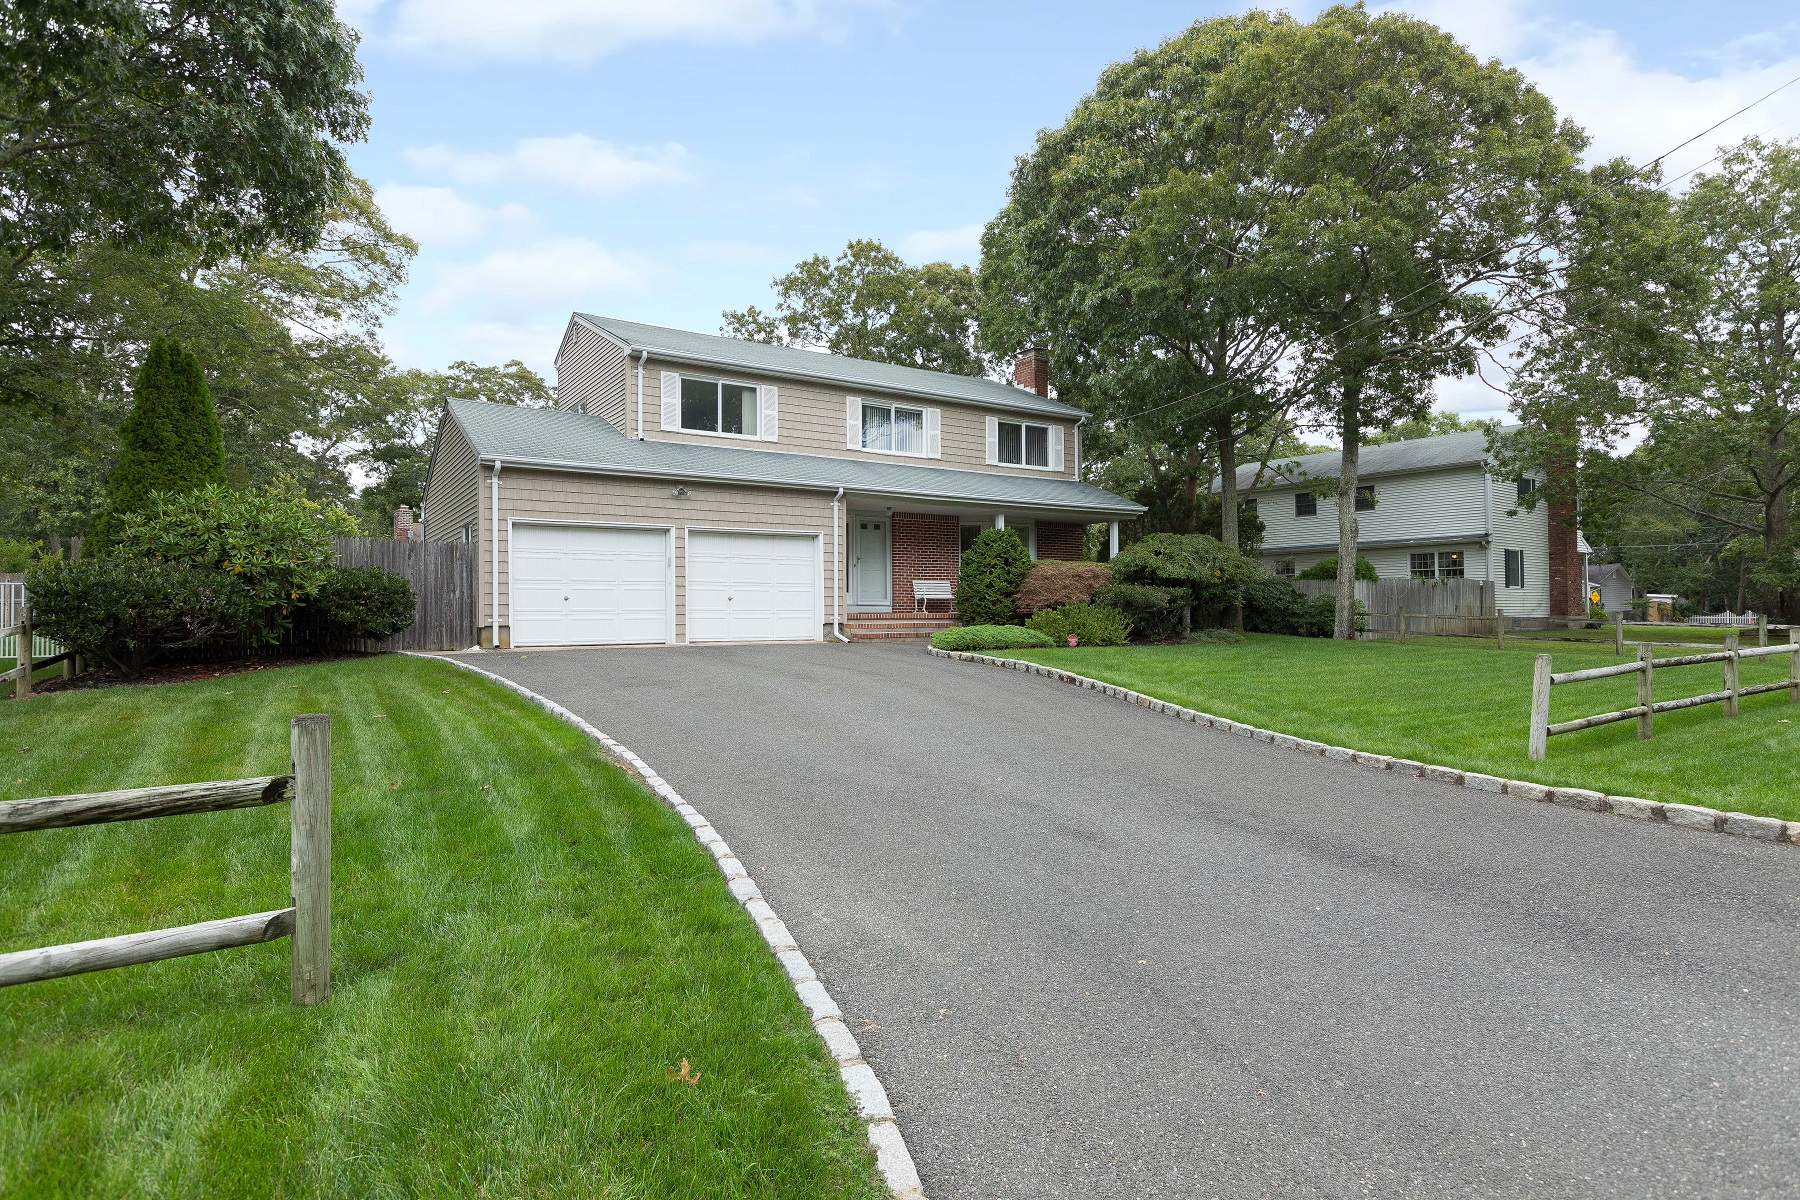 Single Family Homes for Active at Hampton Bays 7 Beth Lane Hampton Bays, New York 11946 United States